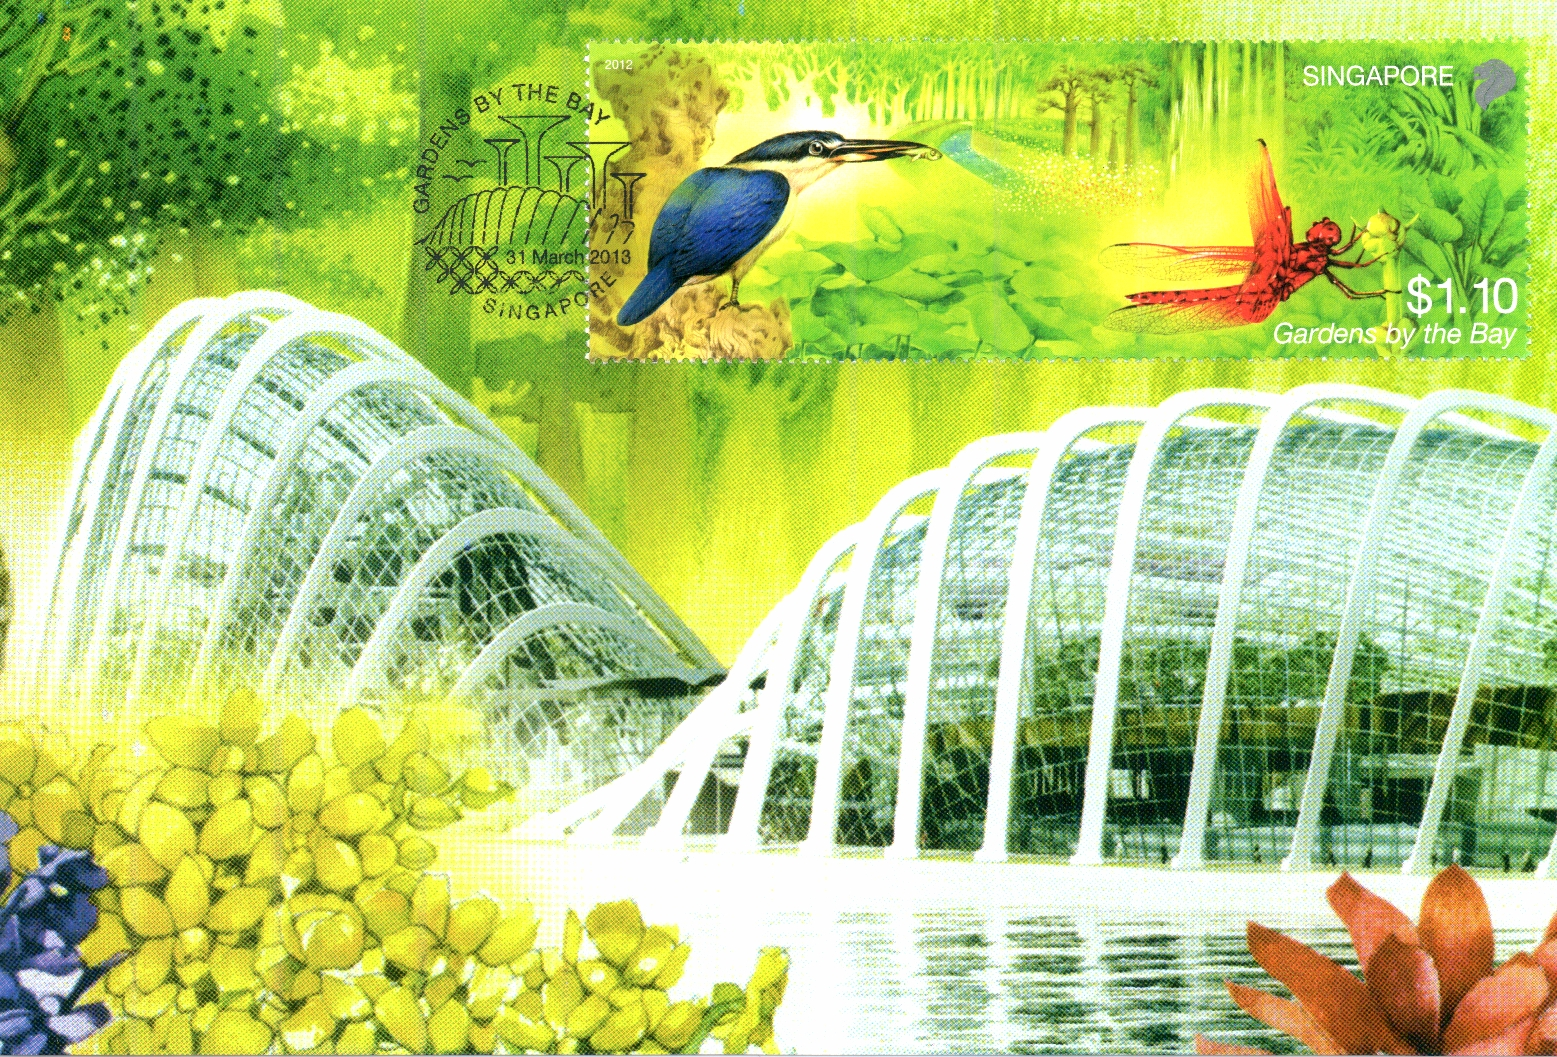 2013 Bonus Stamp - Gardens by the Bay (2012)